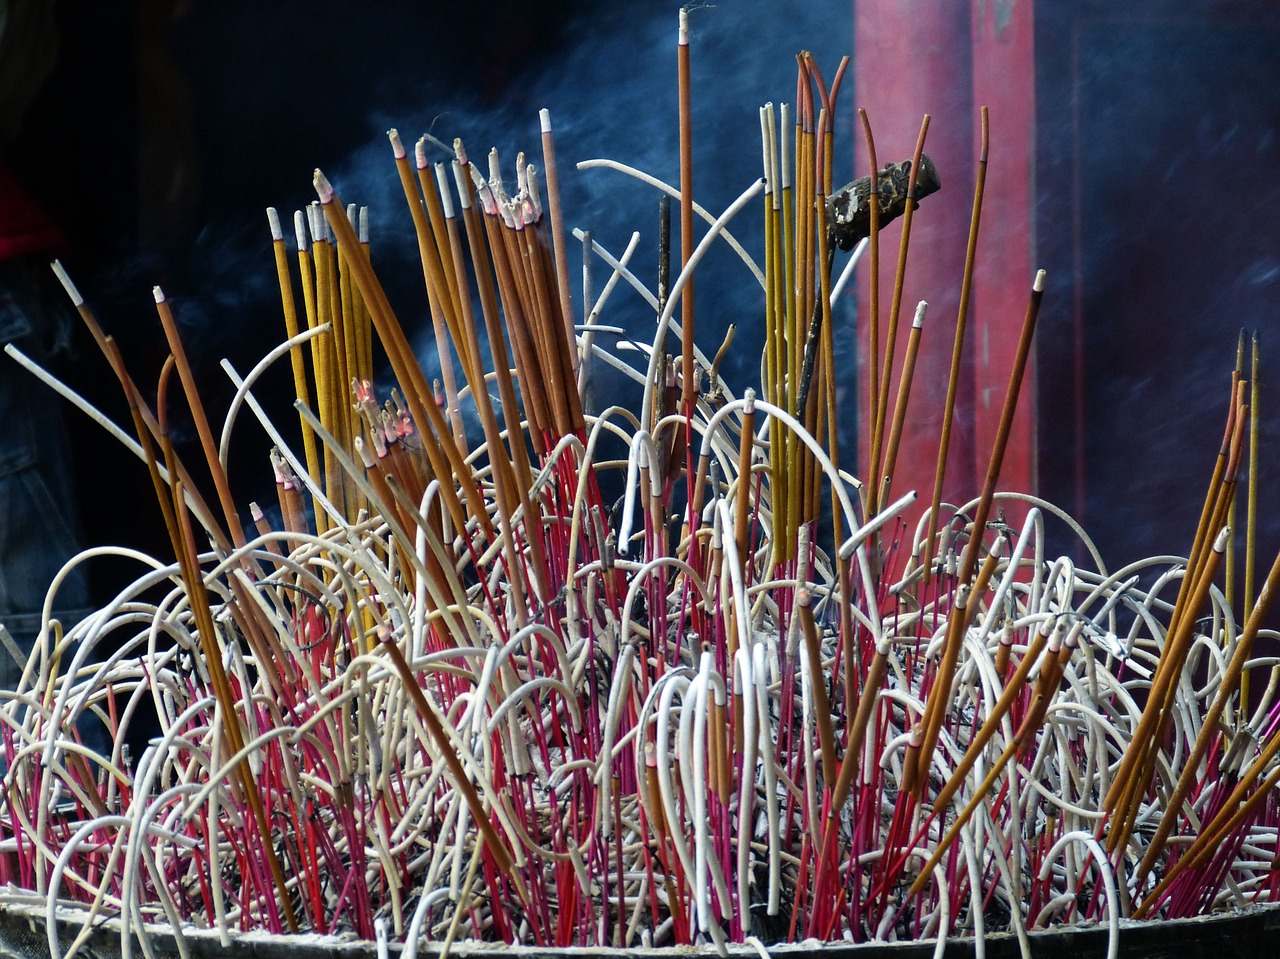 vietnam-incense.jpg